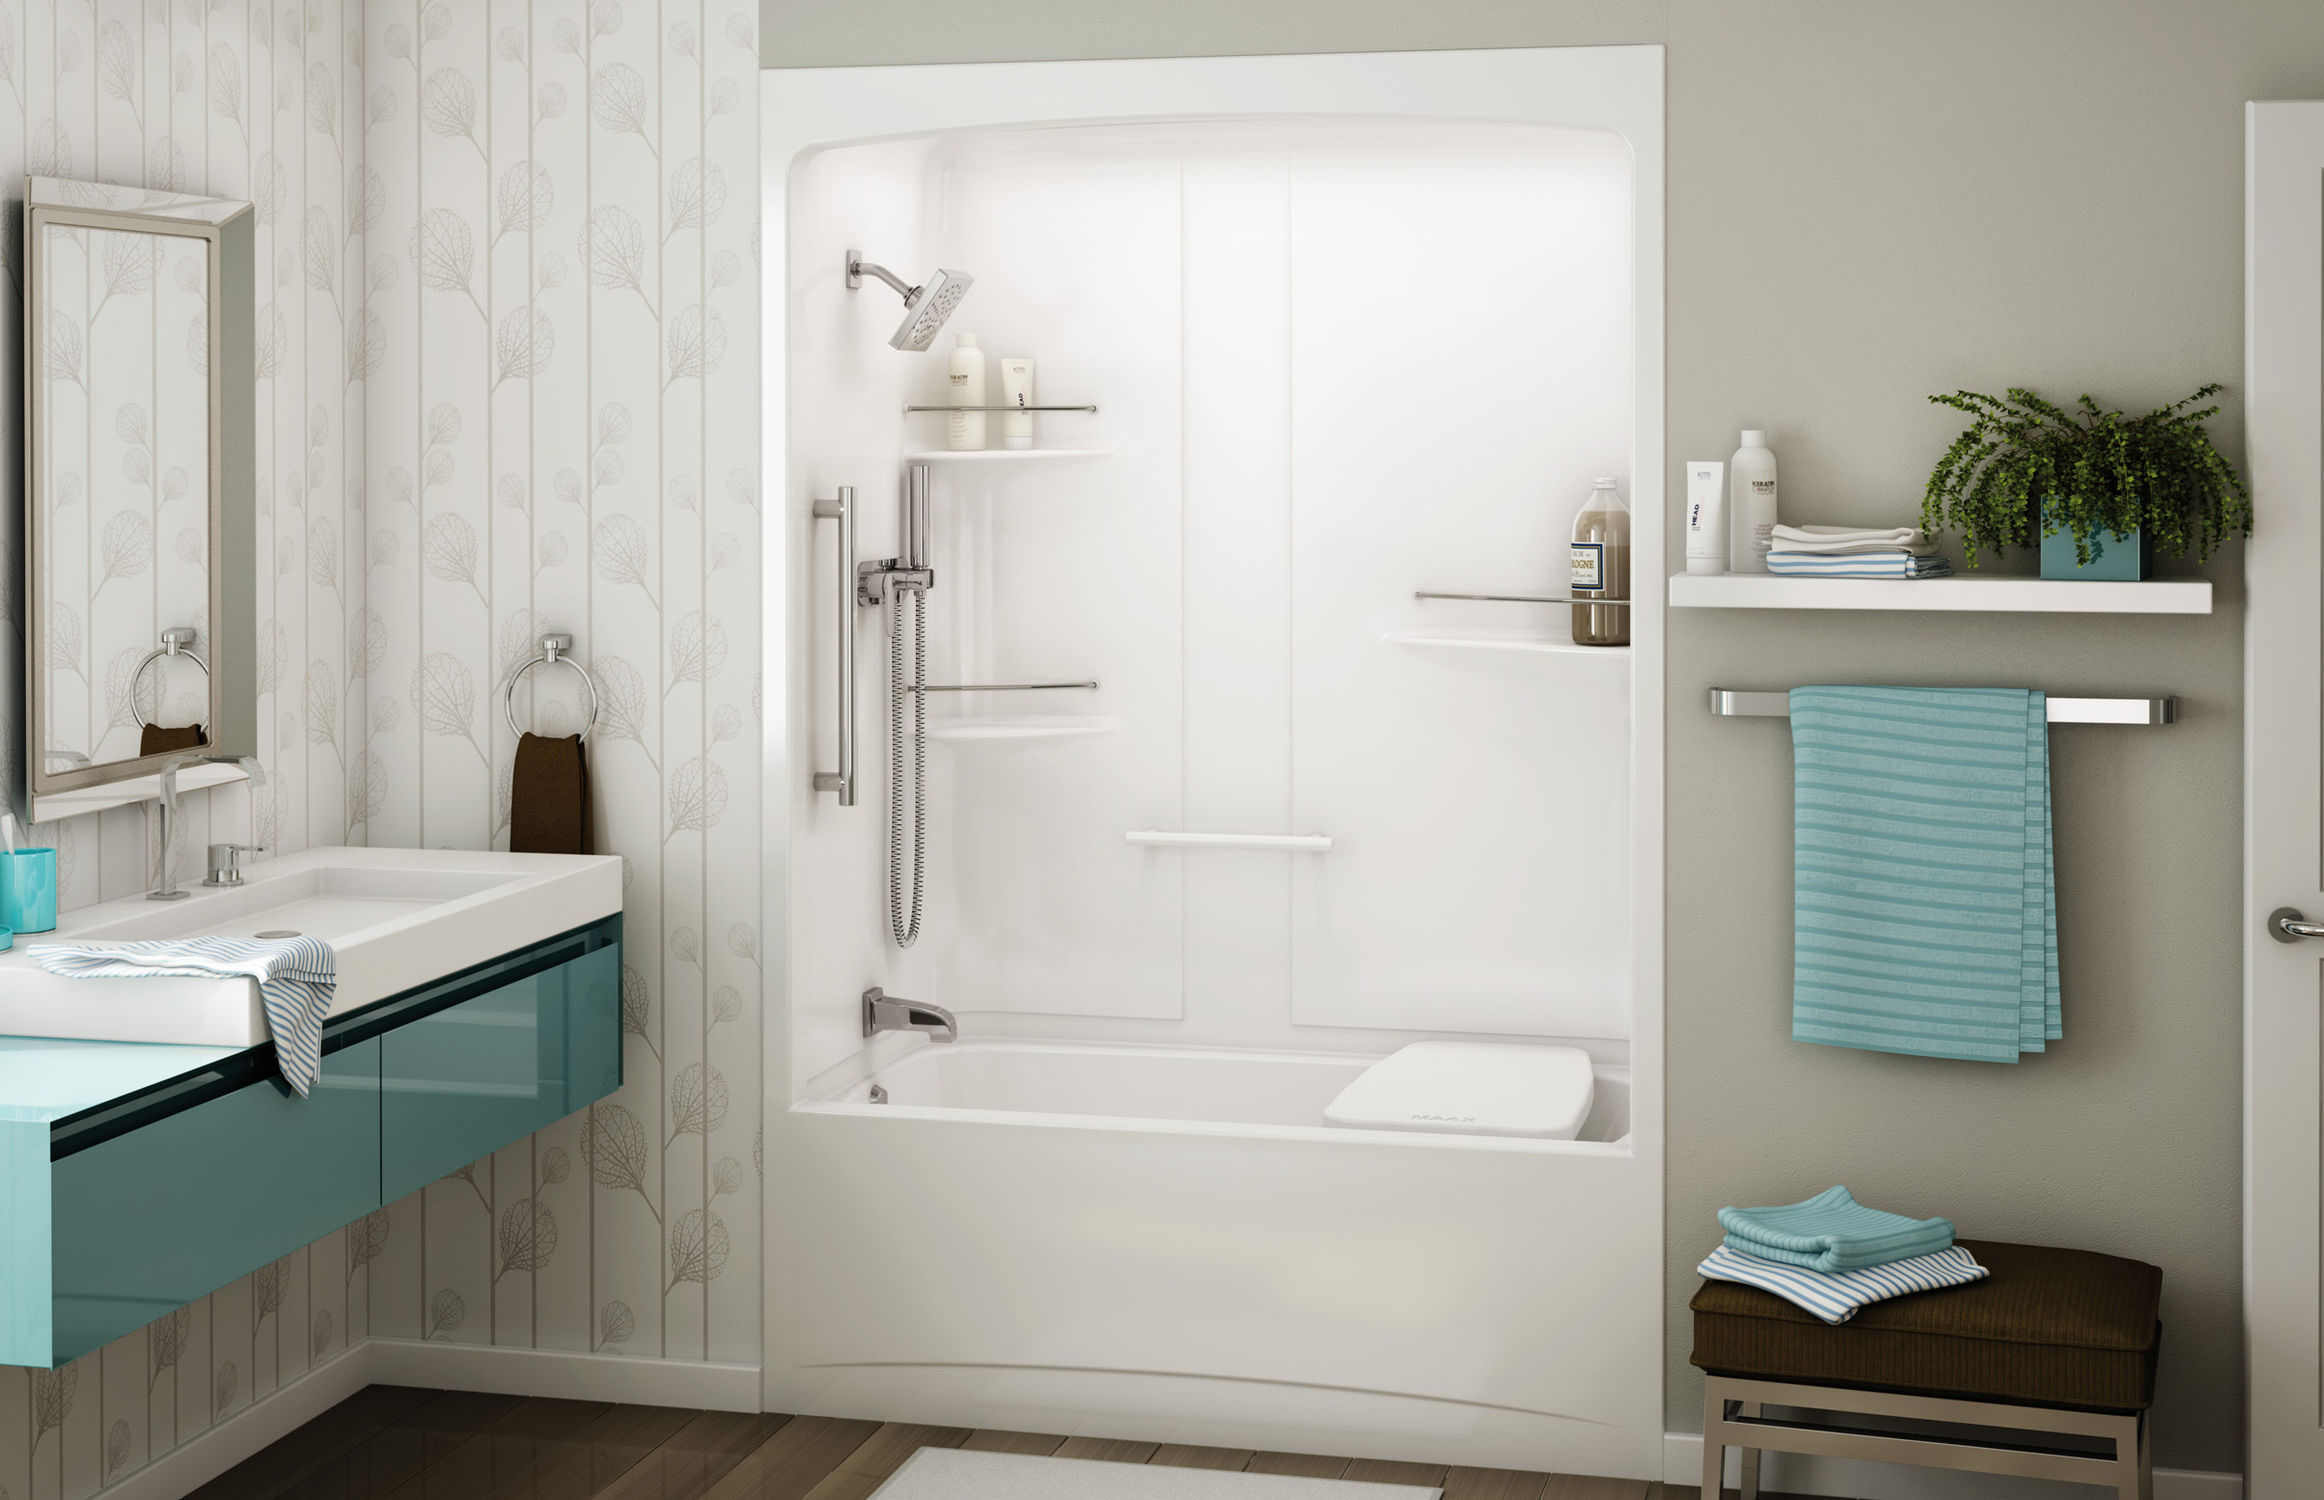 Built in bathtub shower combination   rectangular   acrylic ALLIA  TSR 6032 MAAX  Built in bathtub shower combination   rectangular   acrylic  . Maax Tub Shower Combo. Home Design Ideas